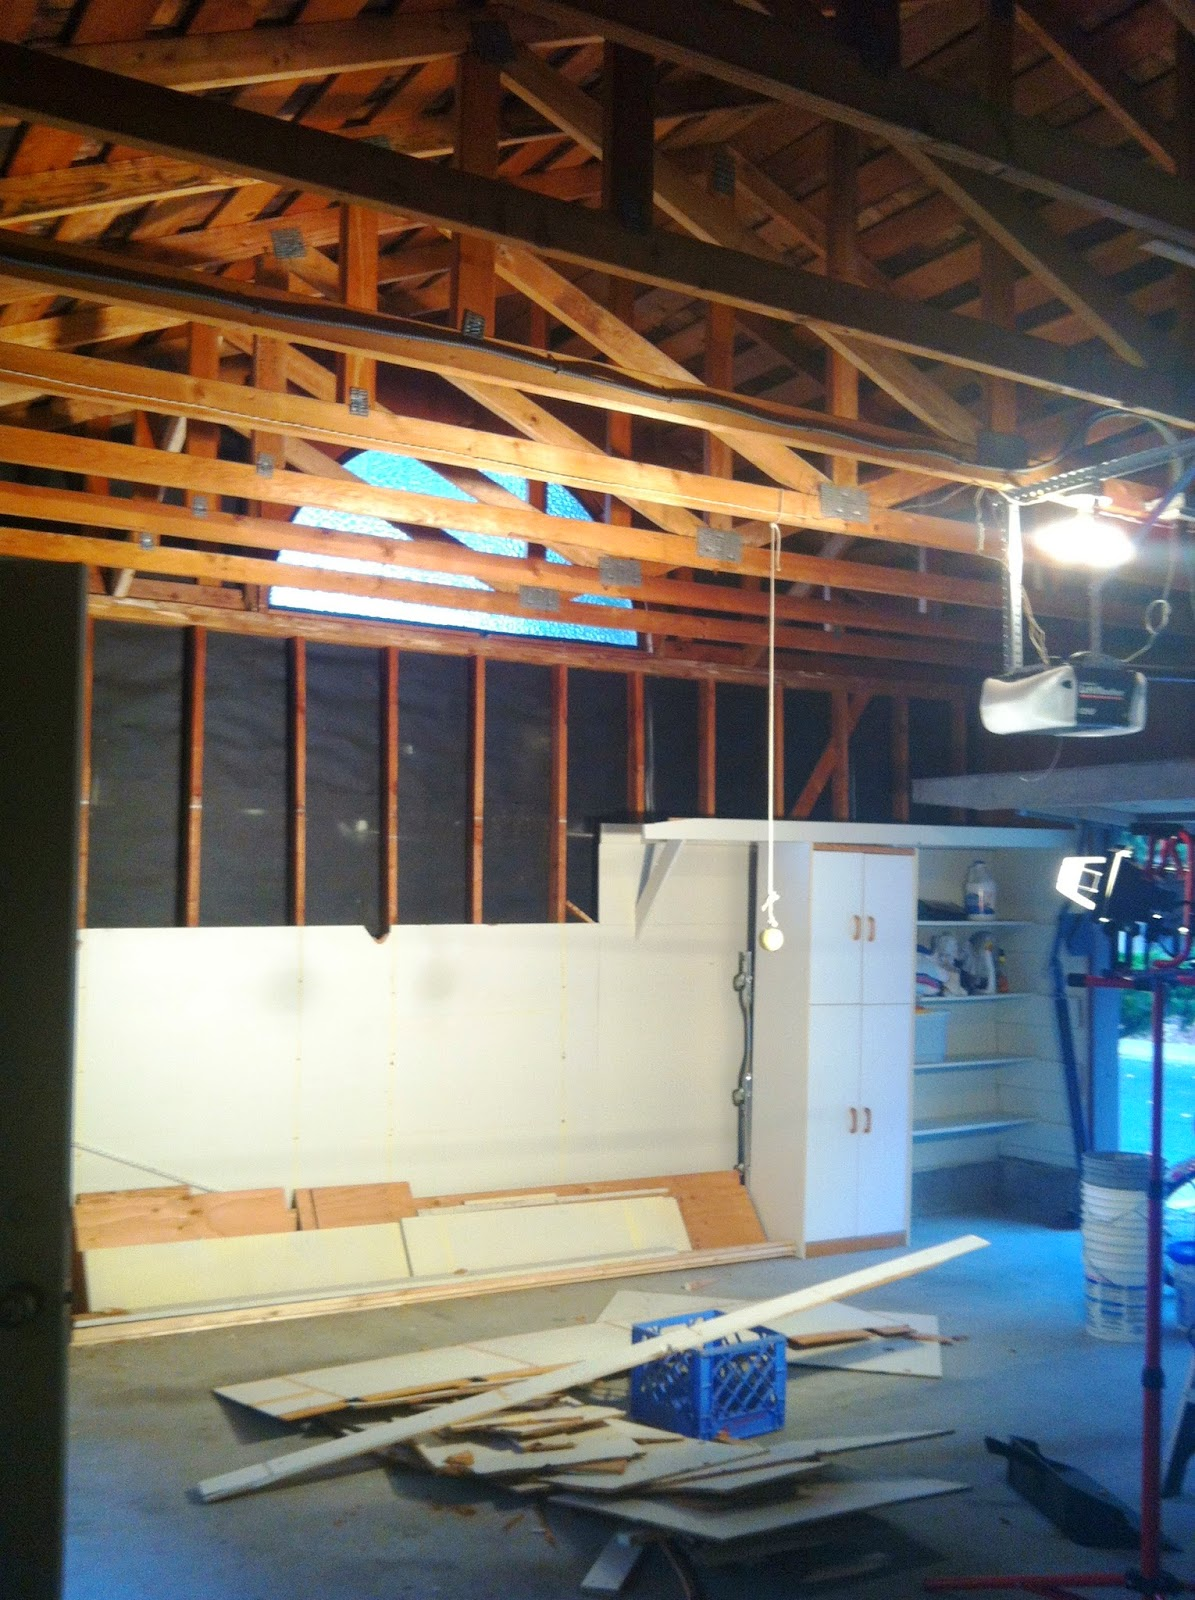 Diy Dithering Painting Garage Trusses And Shingles